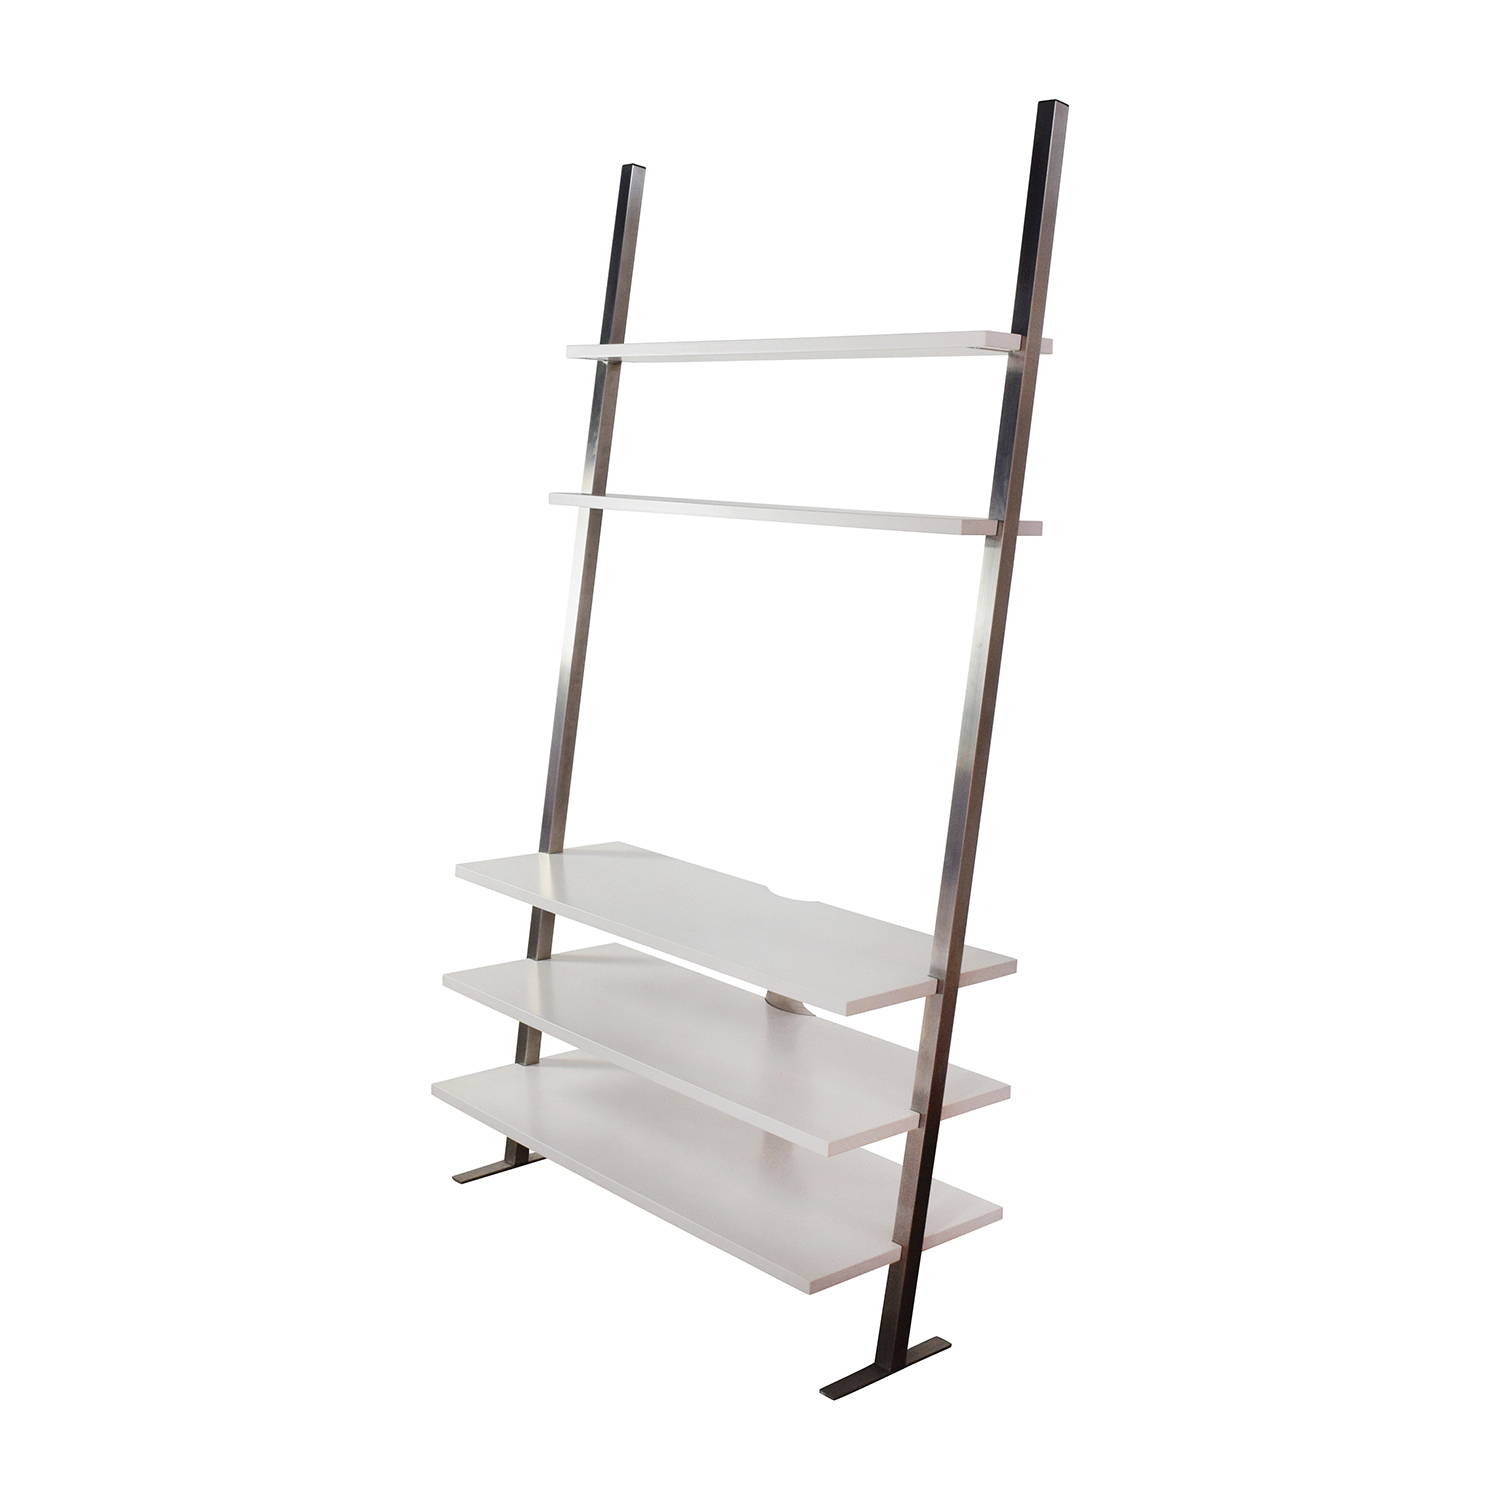 Room and Board Room & Board Gallery Media Leaning Shelf on sale